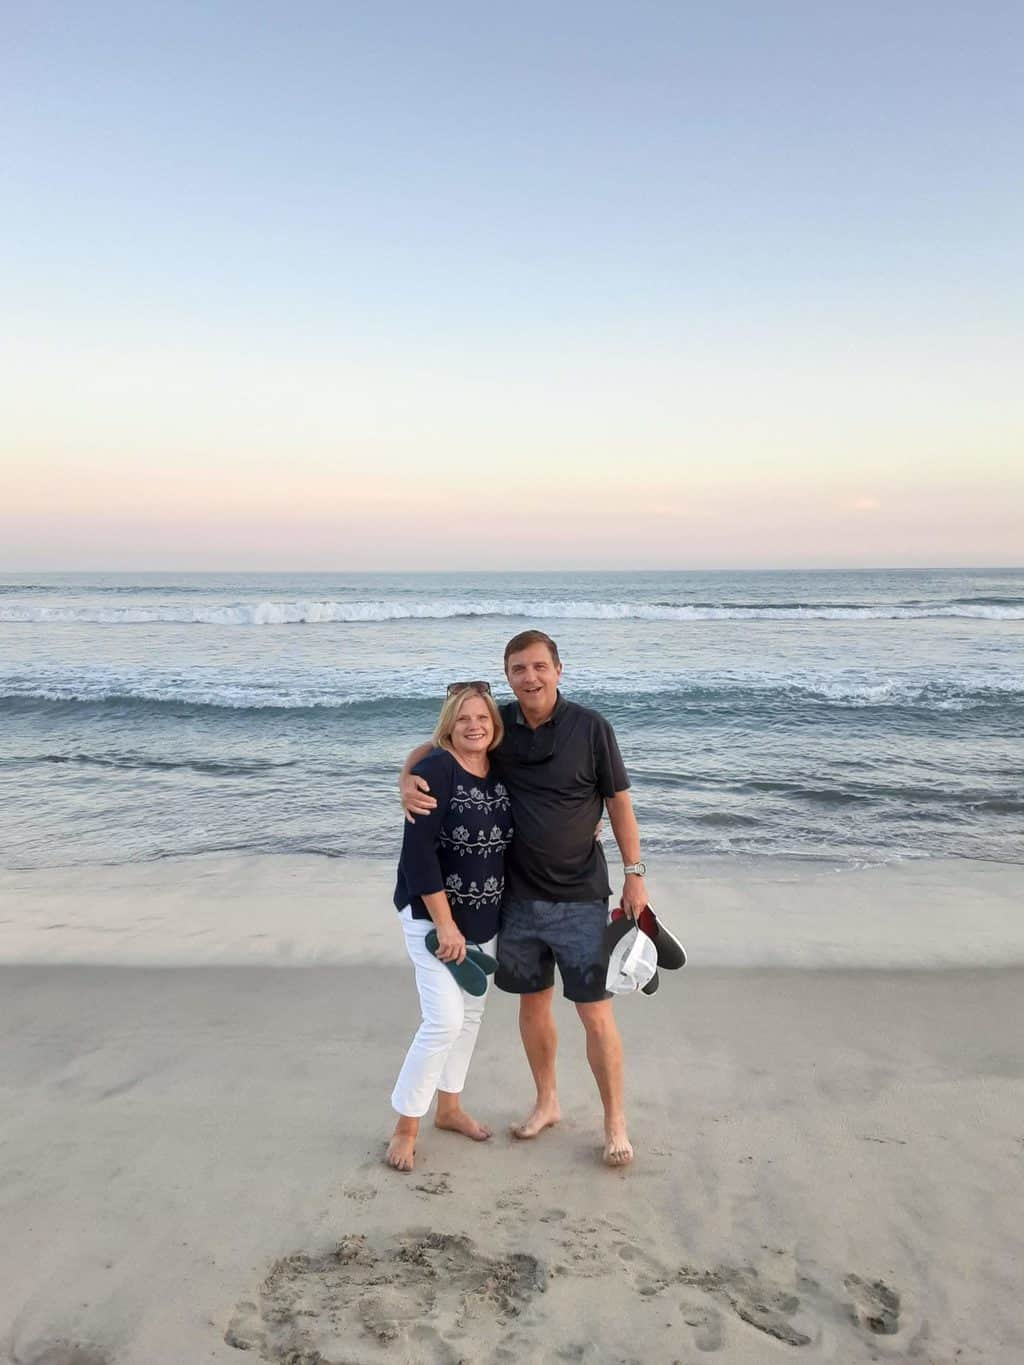 Rob and Lou Ann McMillen on the beach. They are SYMBIS facilitators.